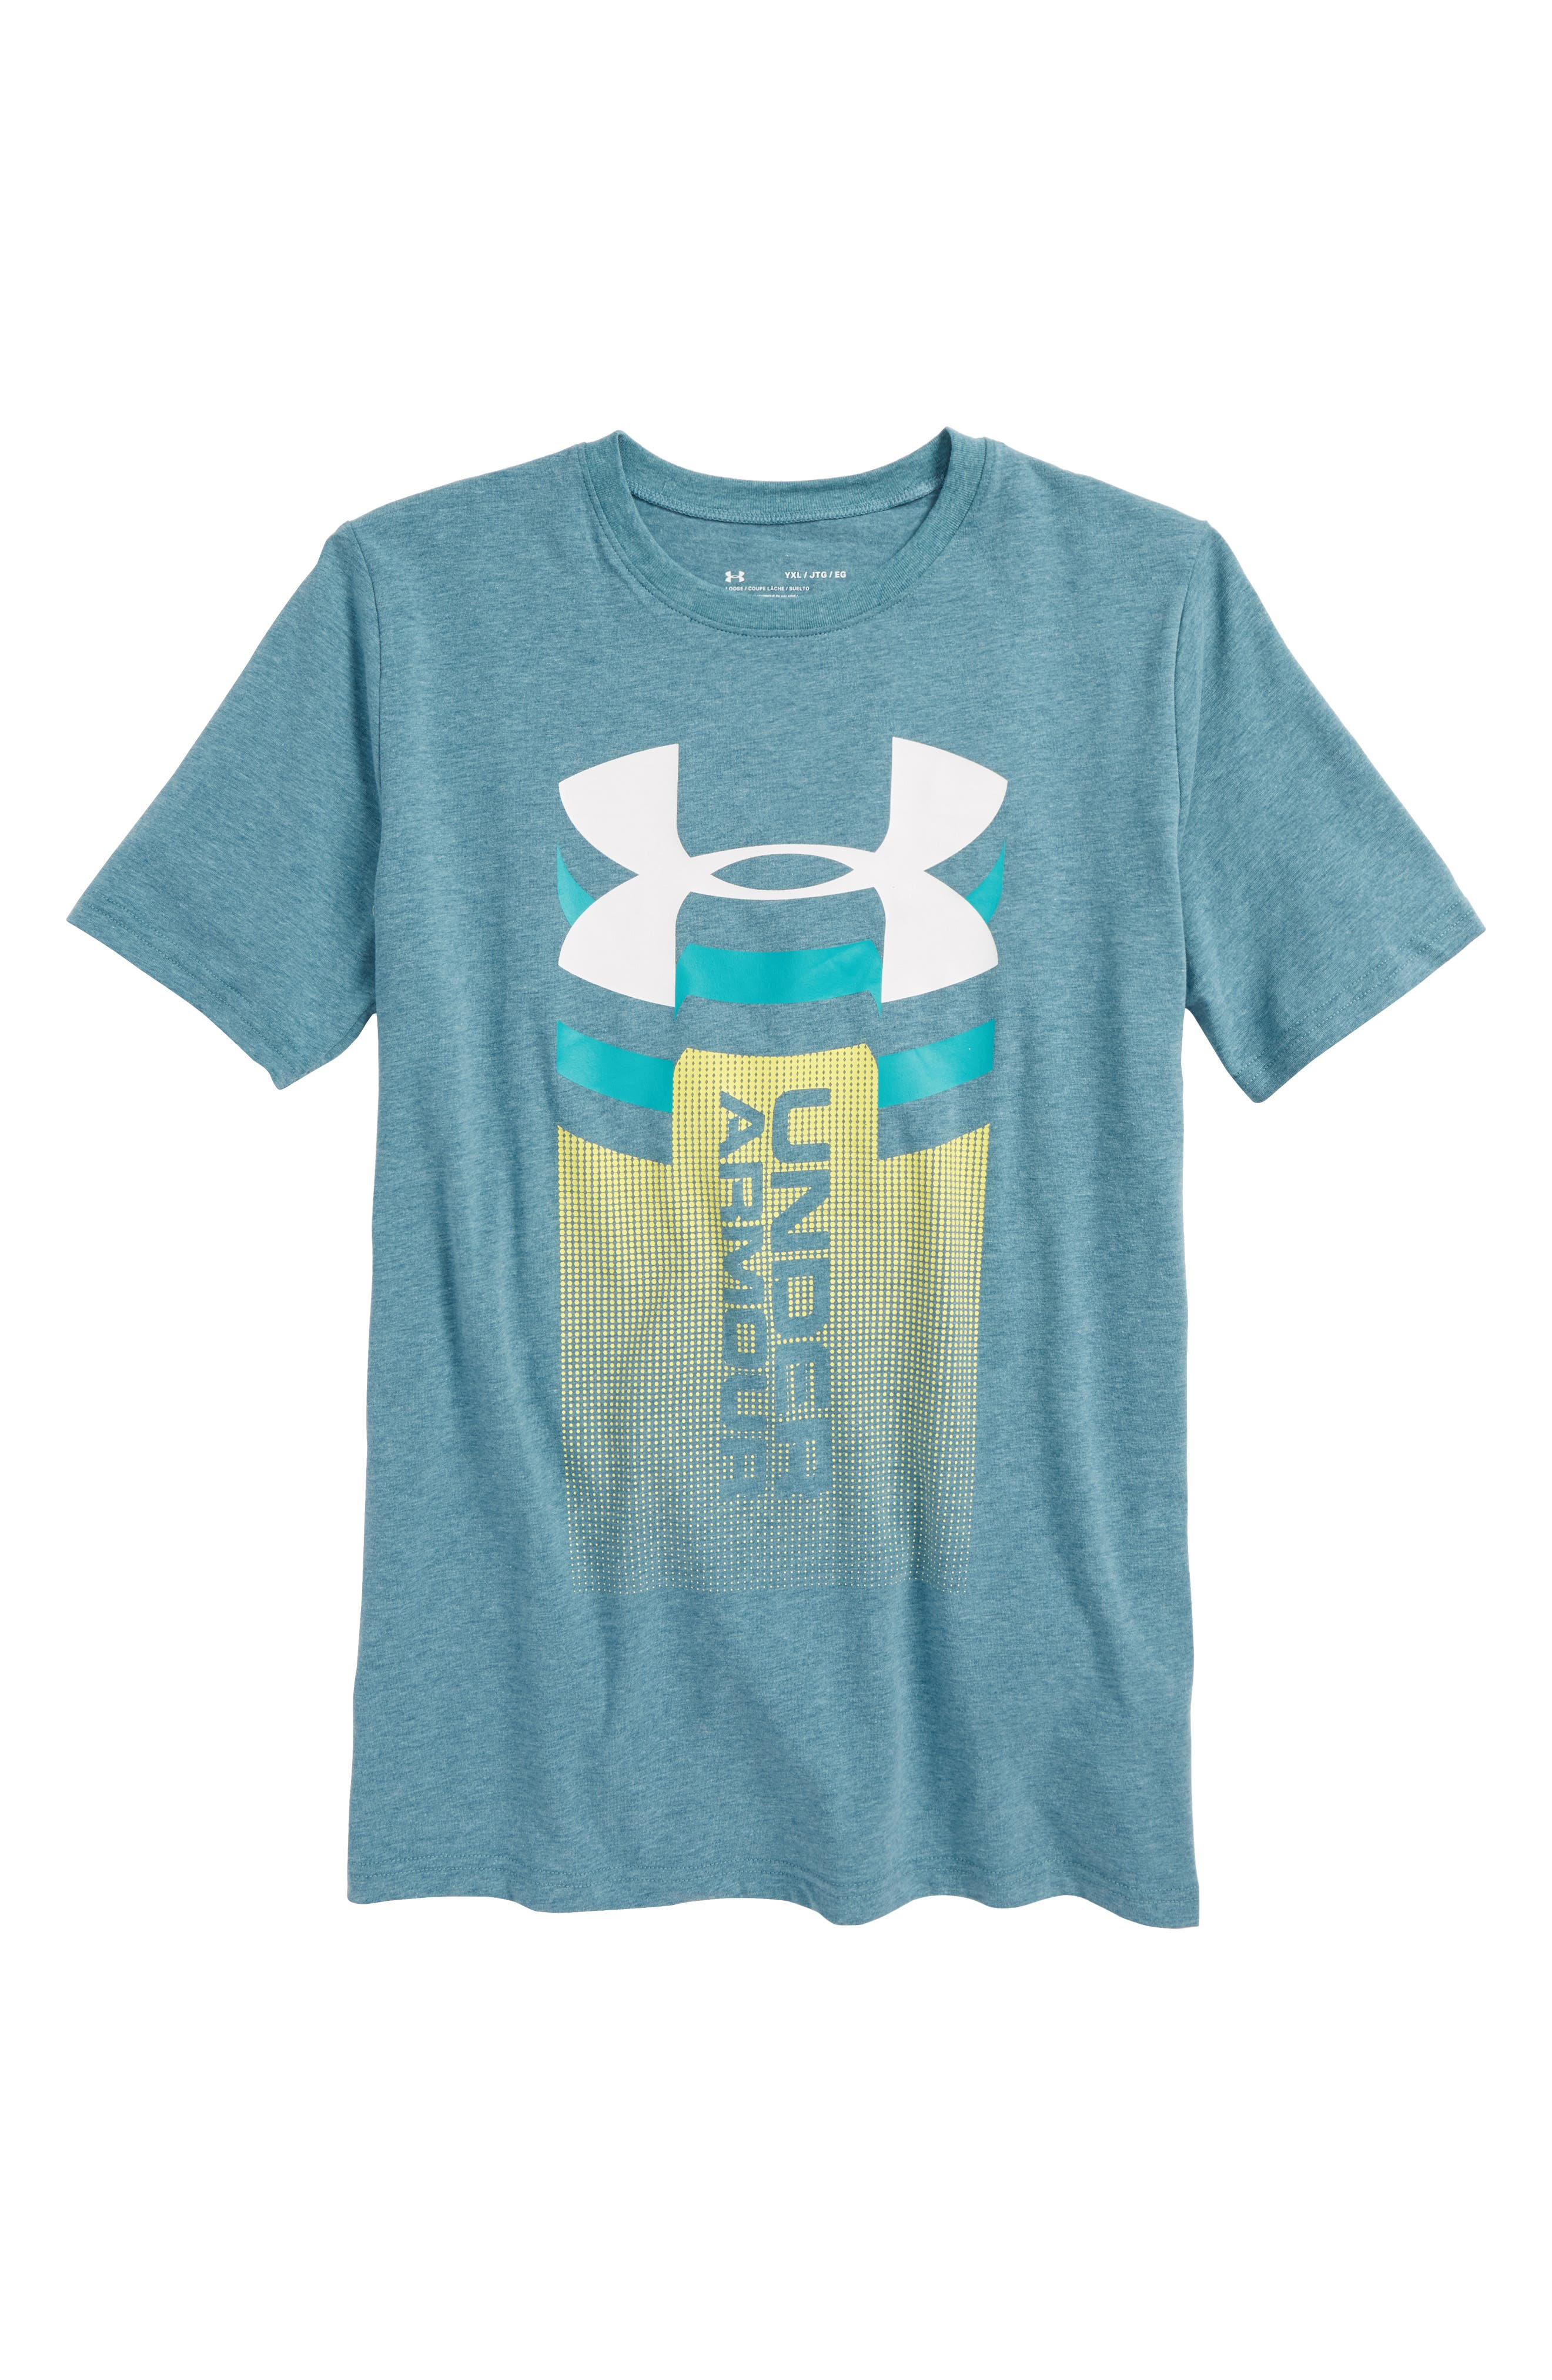 Alternate Image 1 Selected - Under Armour Vertical Graphic T-Shirt (Big Boys)